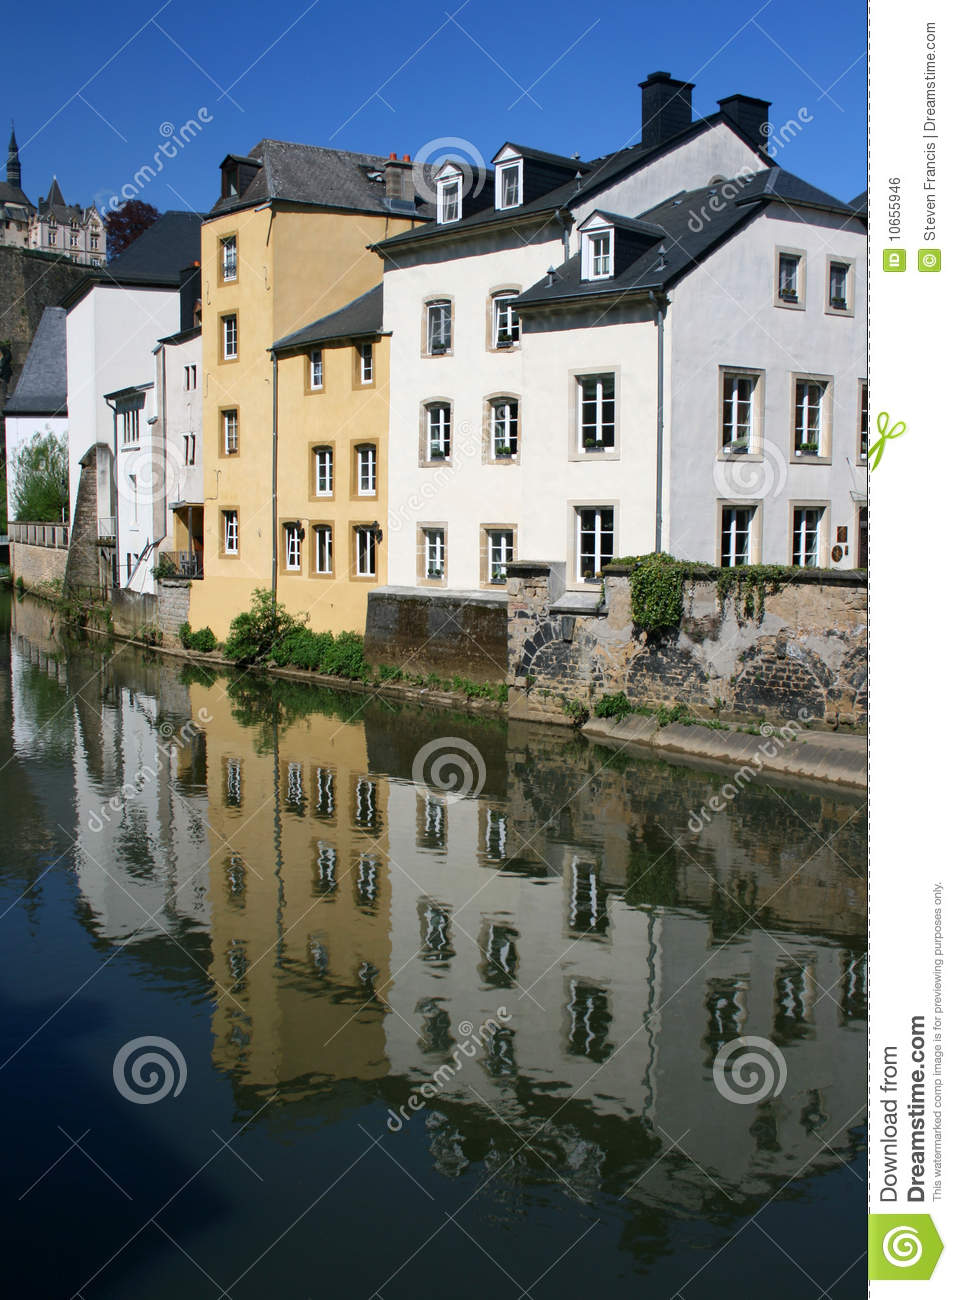 Luxembourg house reflection royalty free stock image for Luxembourg homes